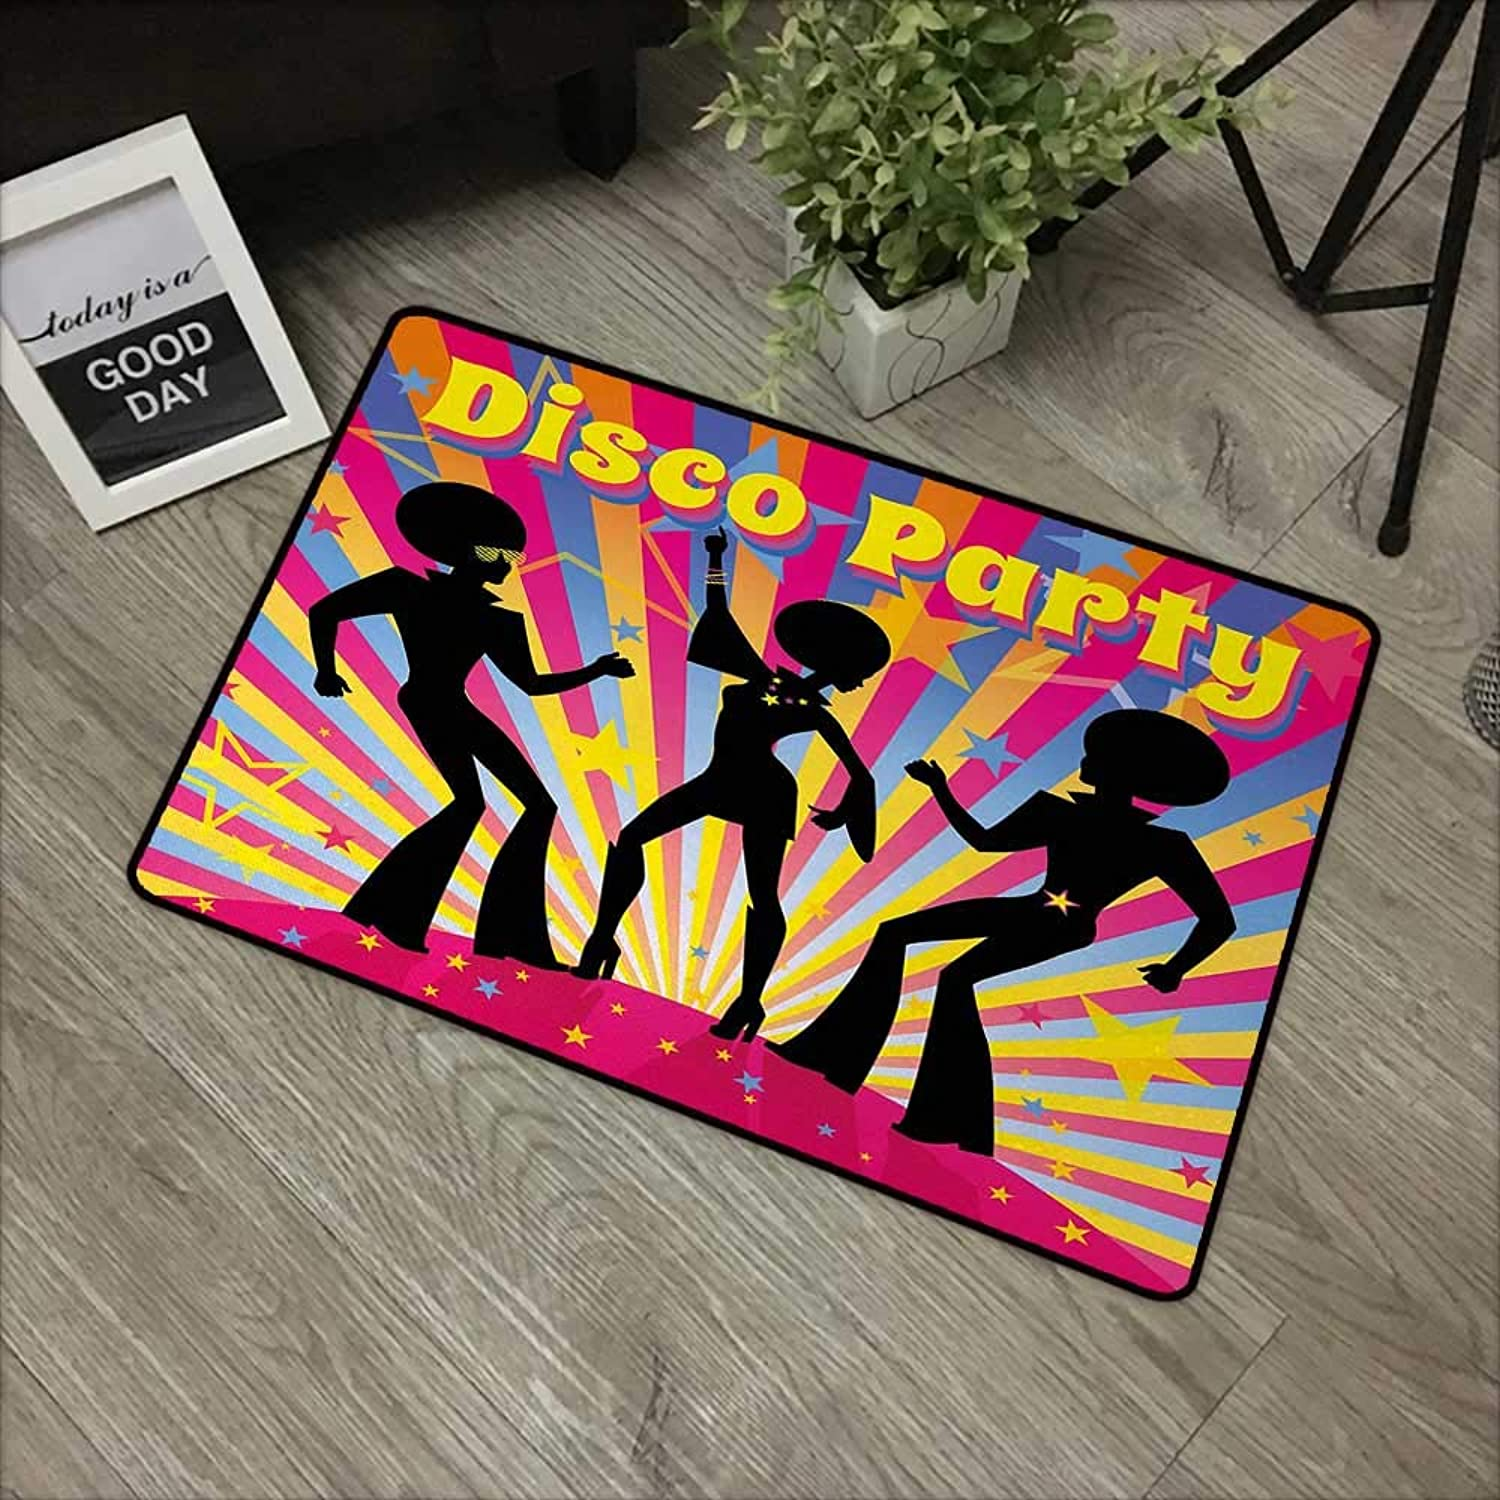 Square Door mat W35 x L59 INCH 70s Party,Dancing People Silhouettes with Afro Hair Disco Party and Funky Display Print,Multicolor Non-Slip Door Mat Carpet